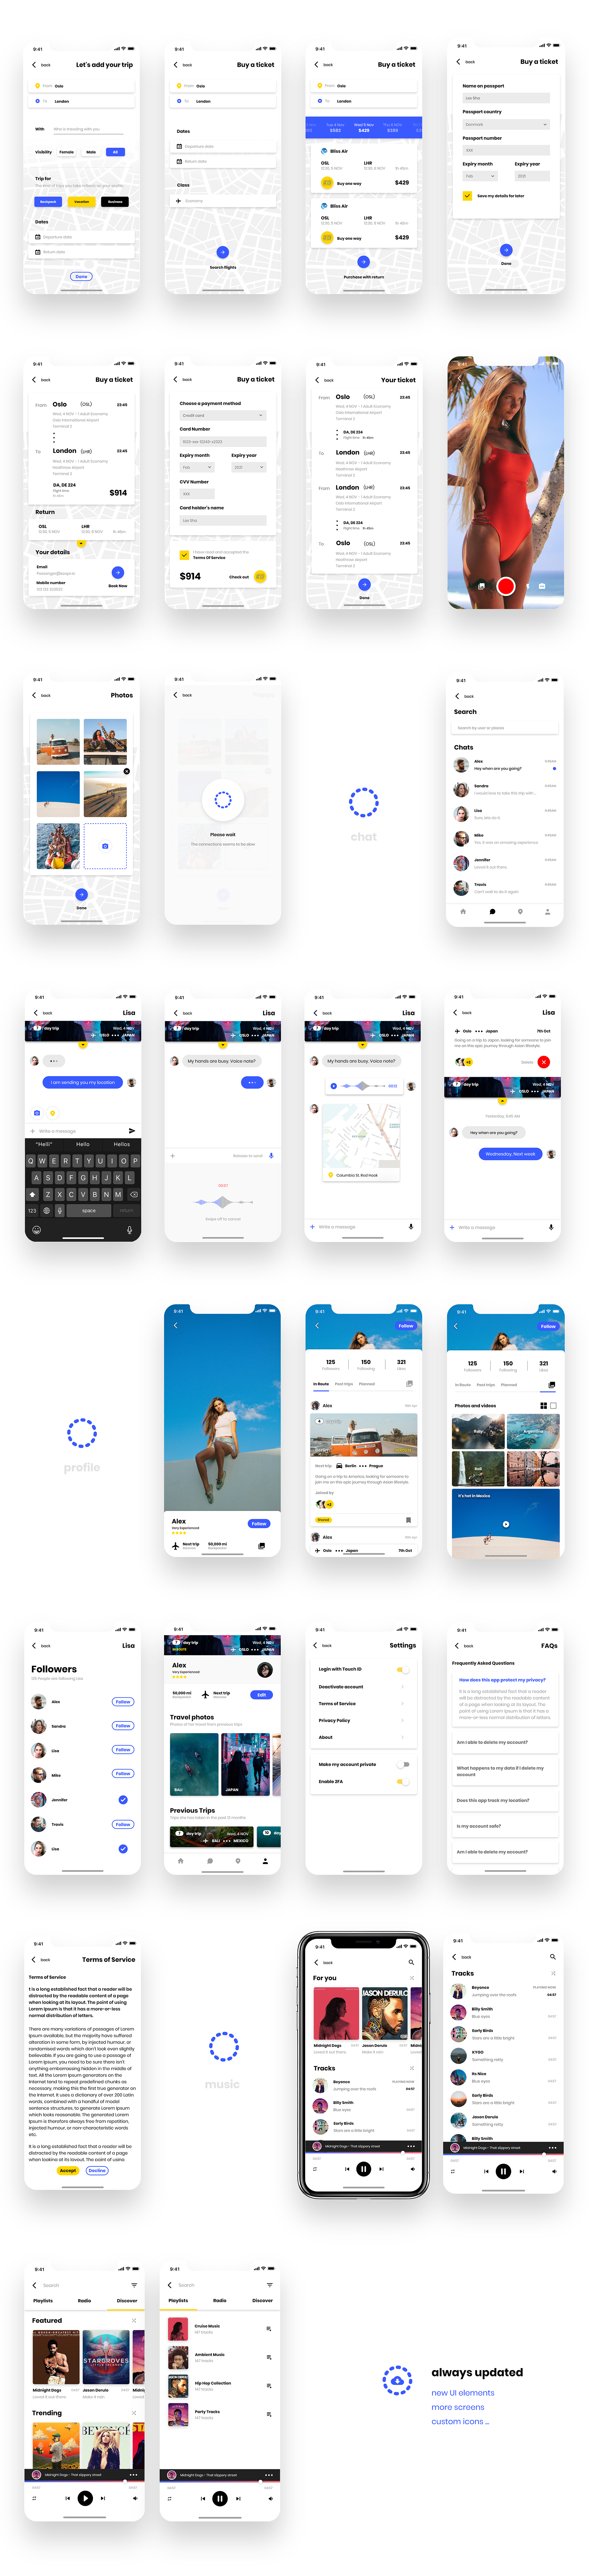 UI Kit Free for Adobe XD